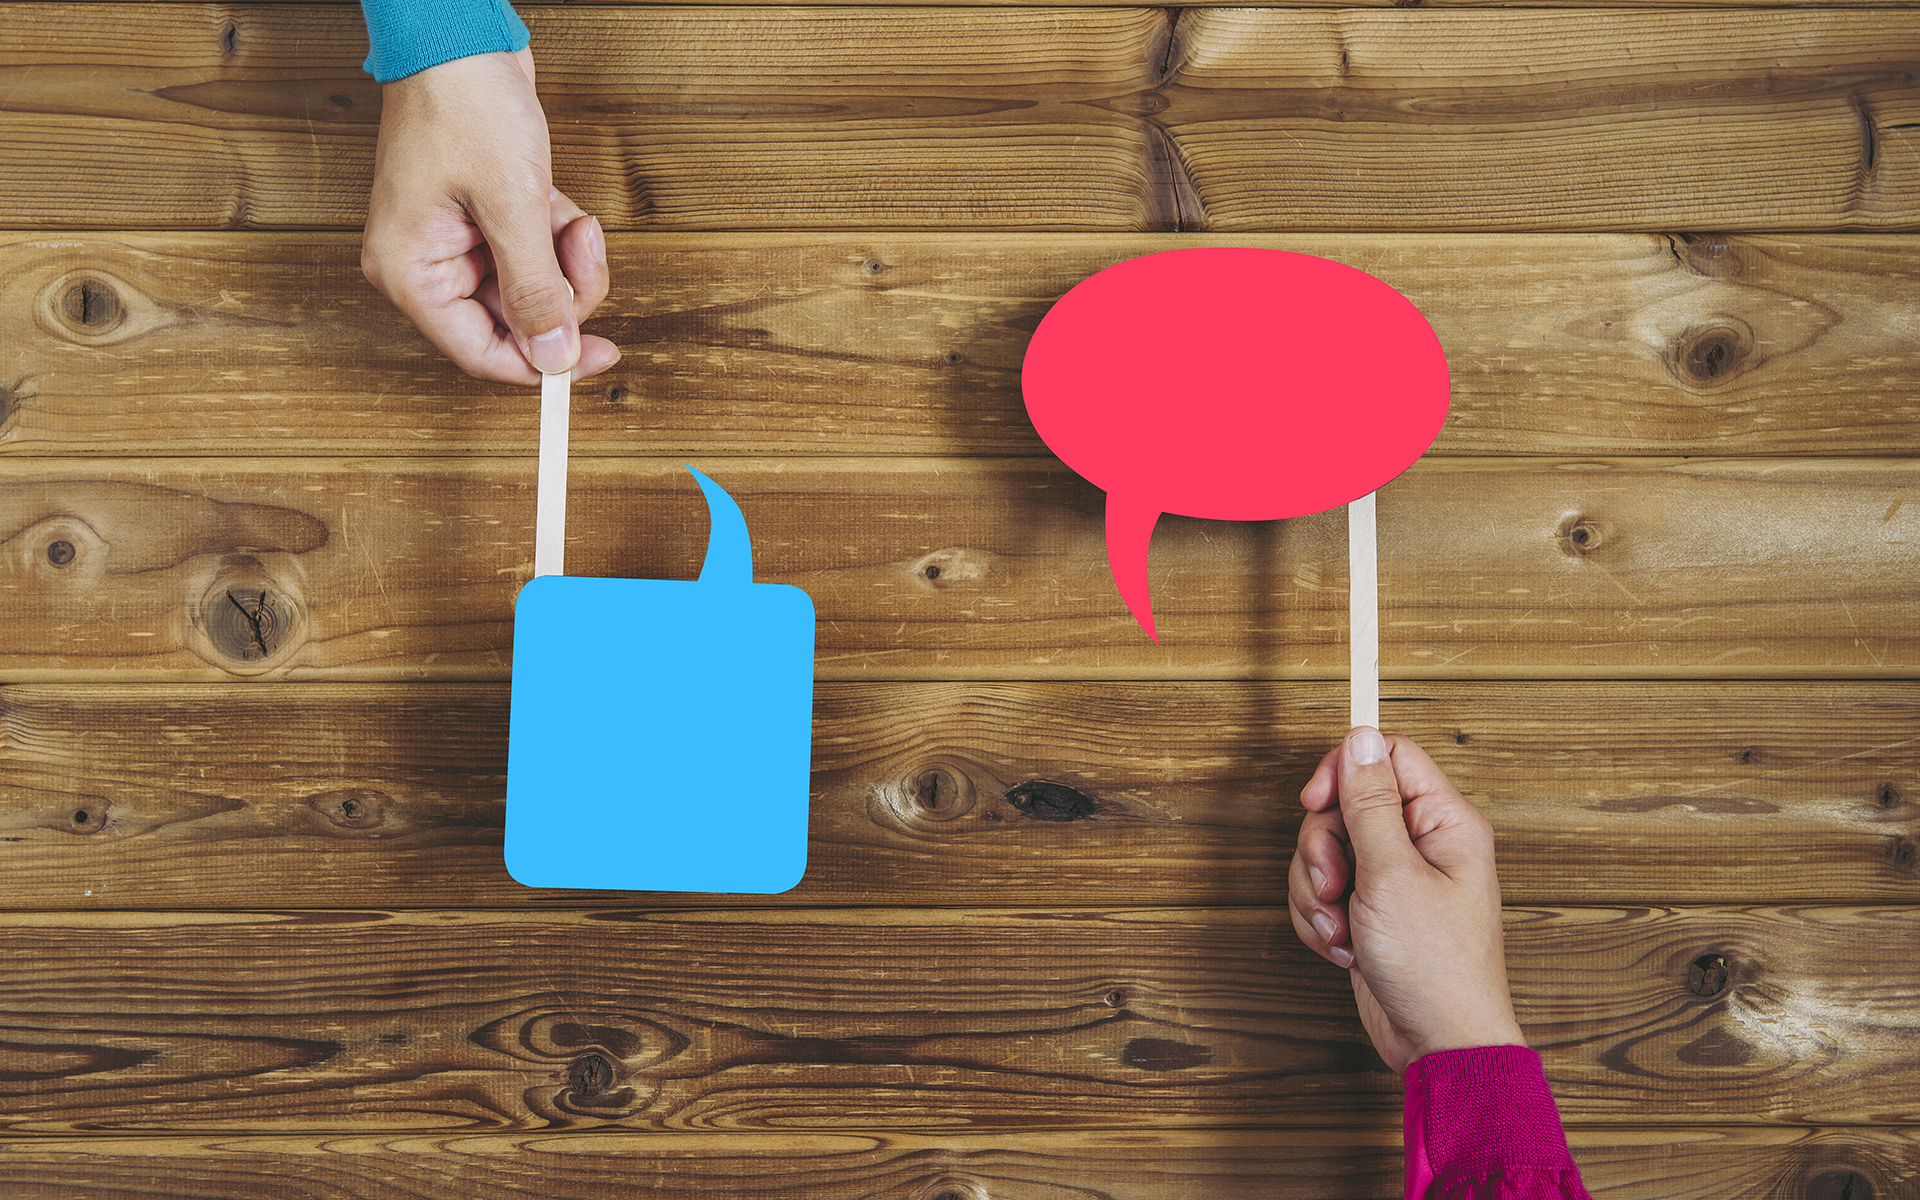 Being Mindful and Compassionate in Tough Conversations - Two conversations bubbles